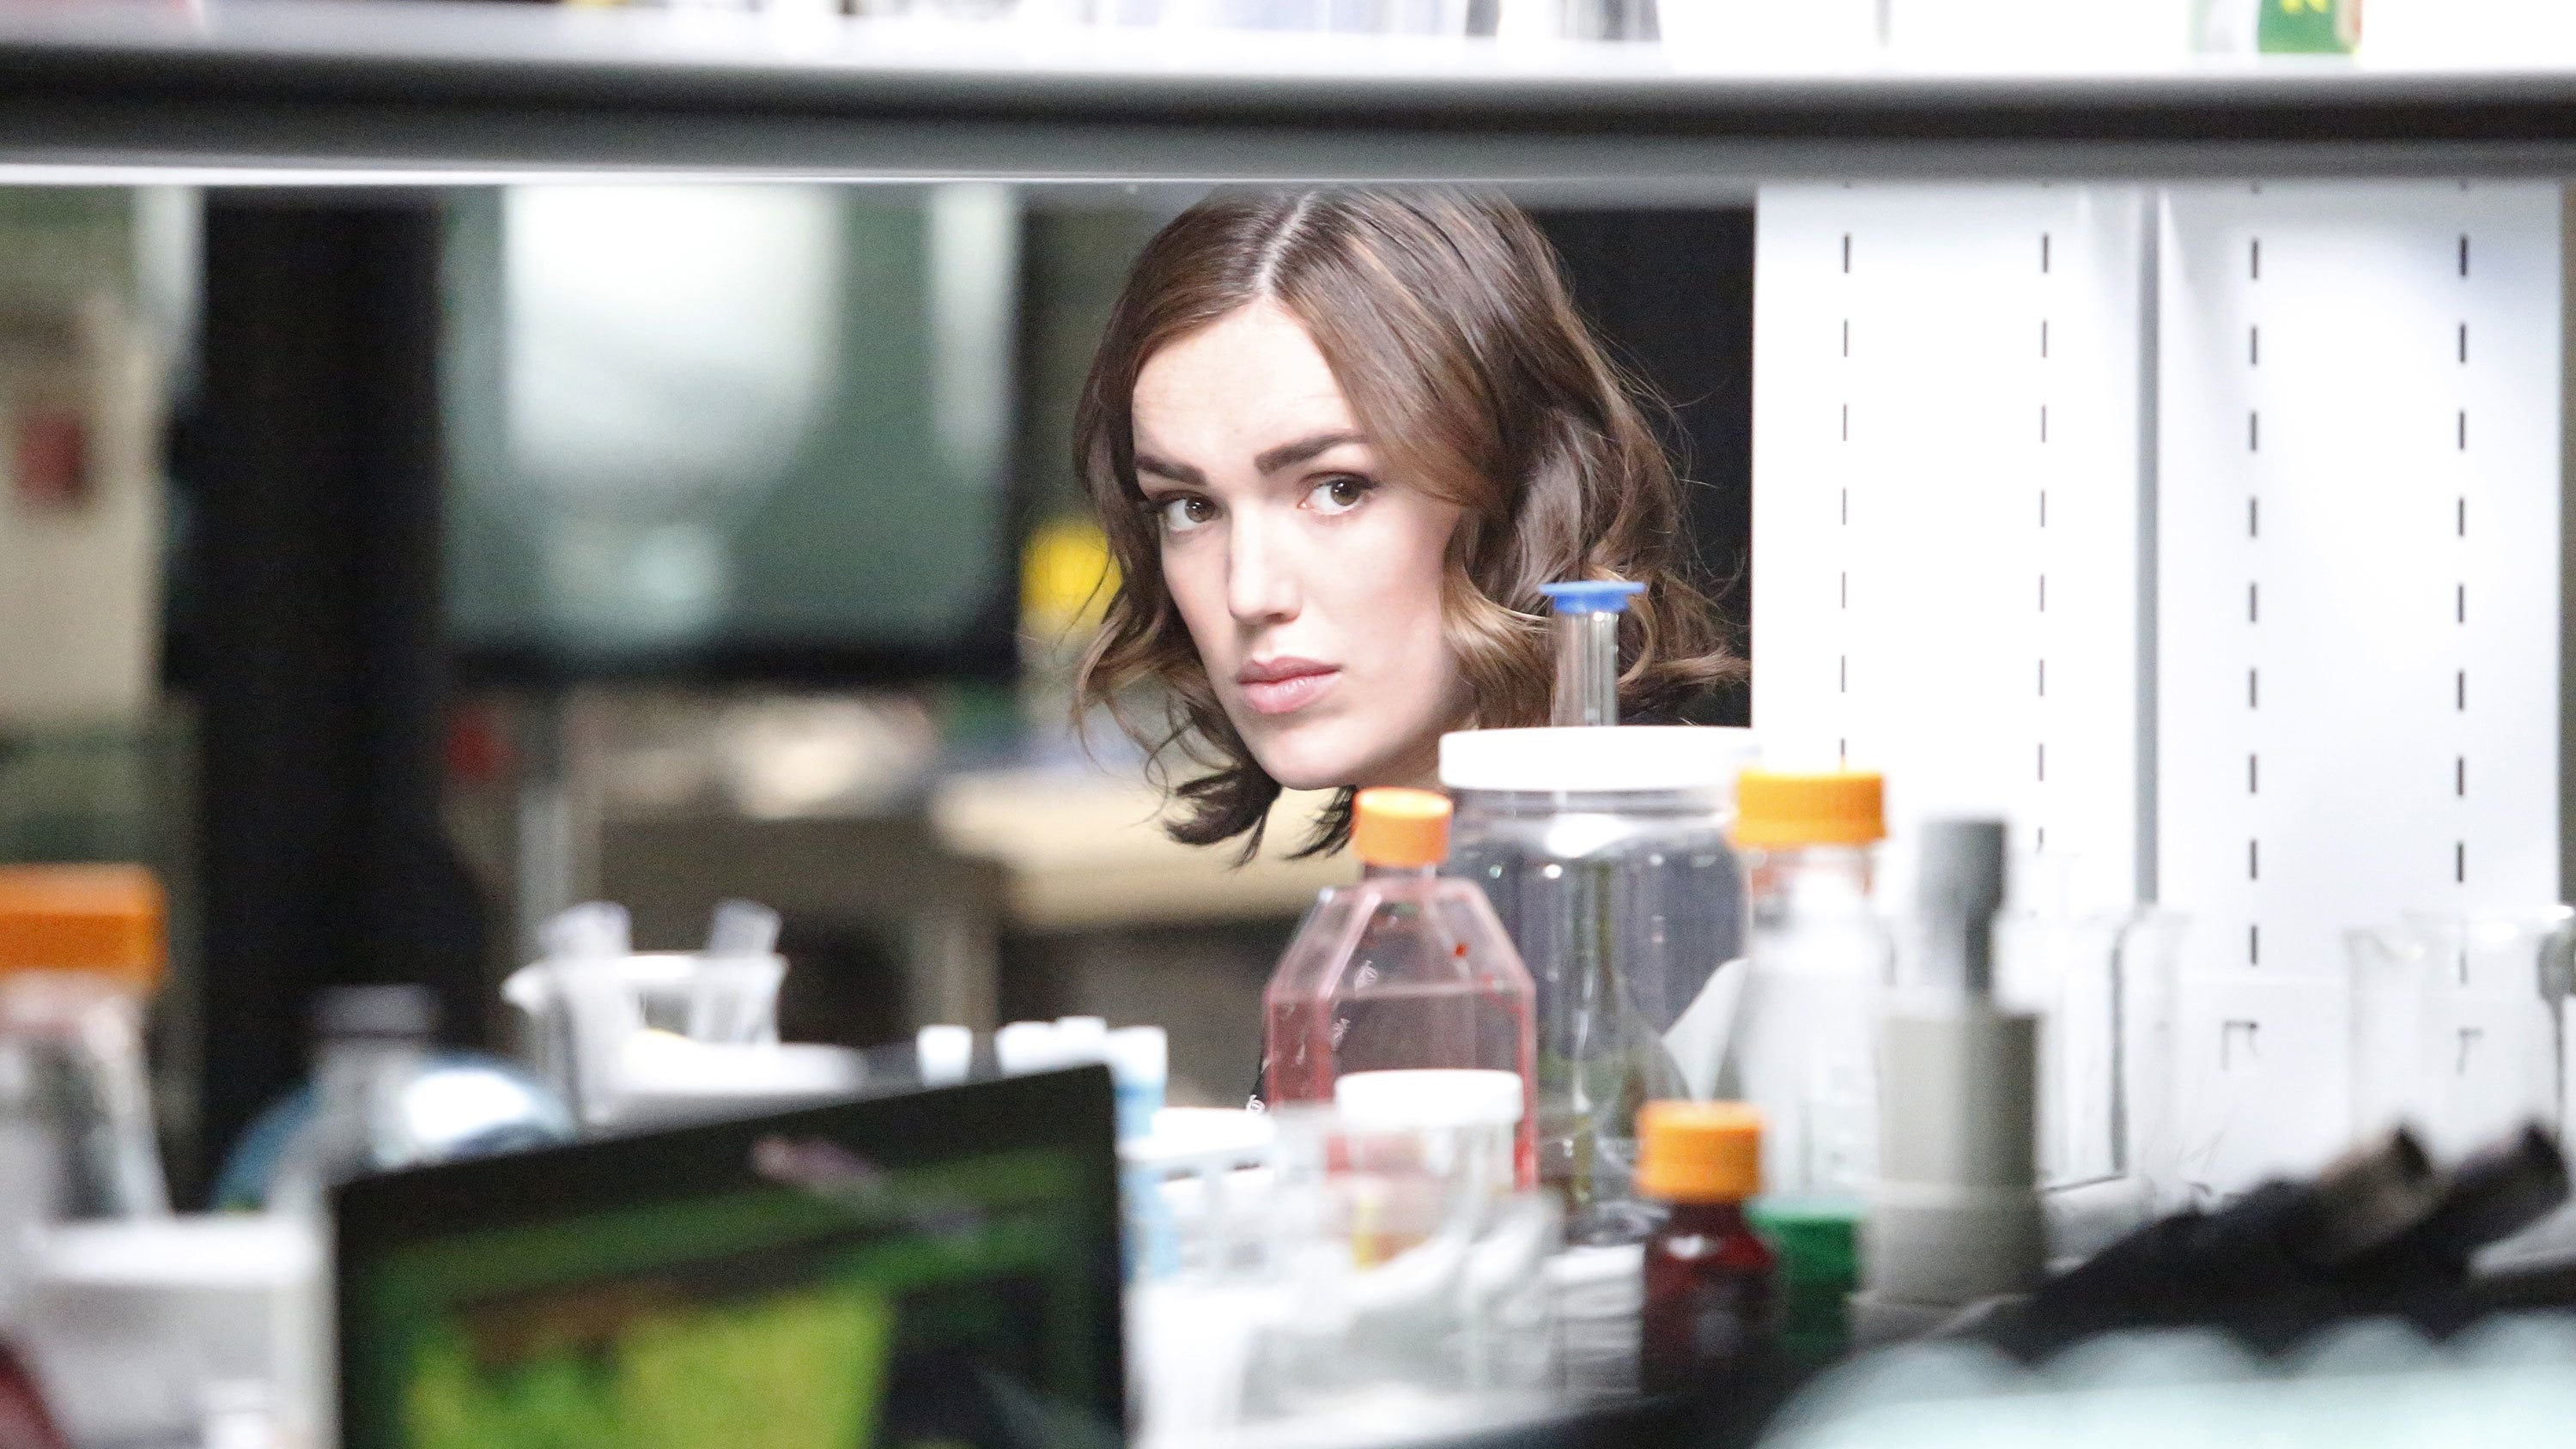 Marvel's Agents of S.H.I.E.L.D. - Season 2 Episode 19 : The Dirty Half Dozen